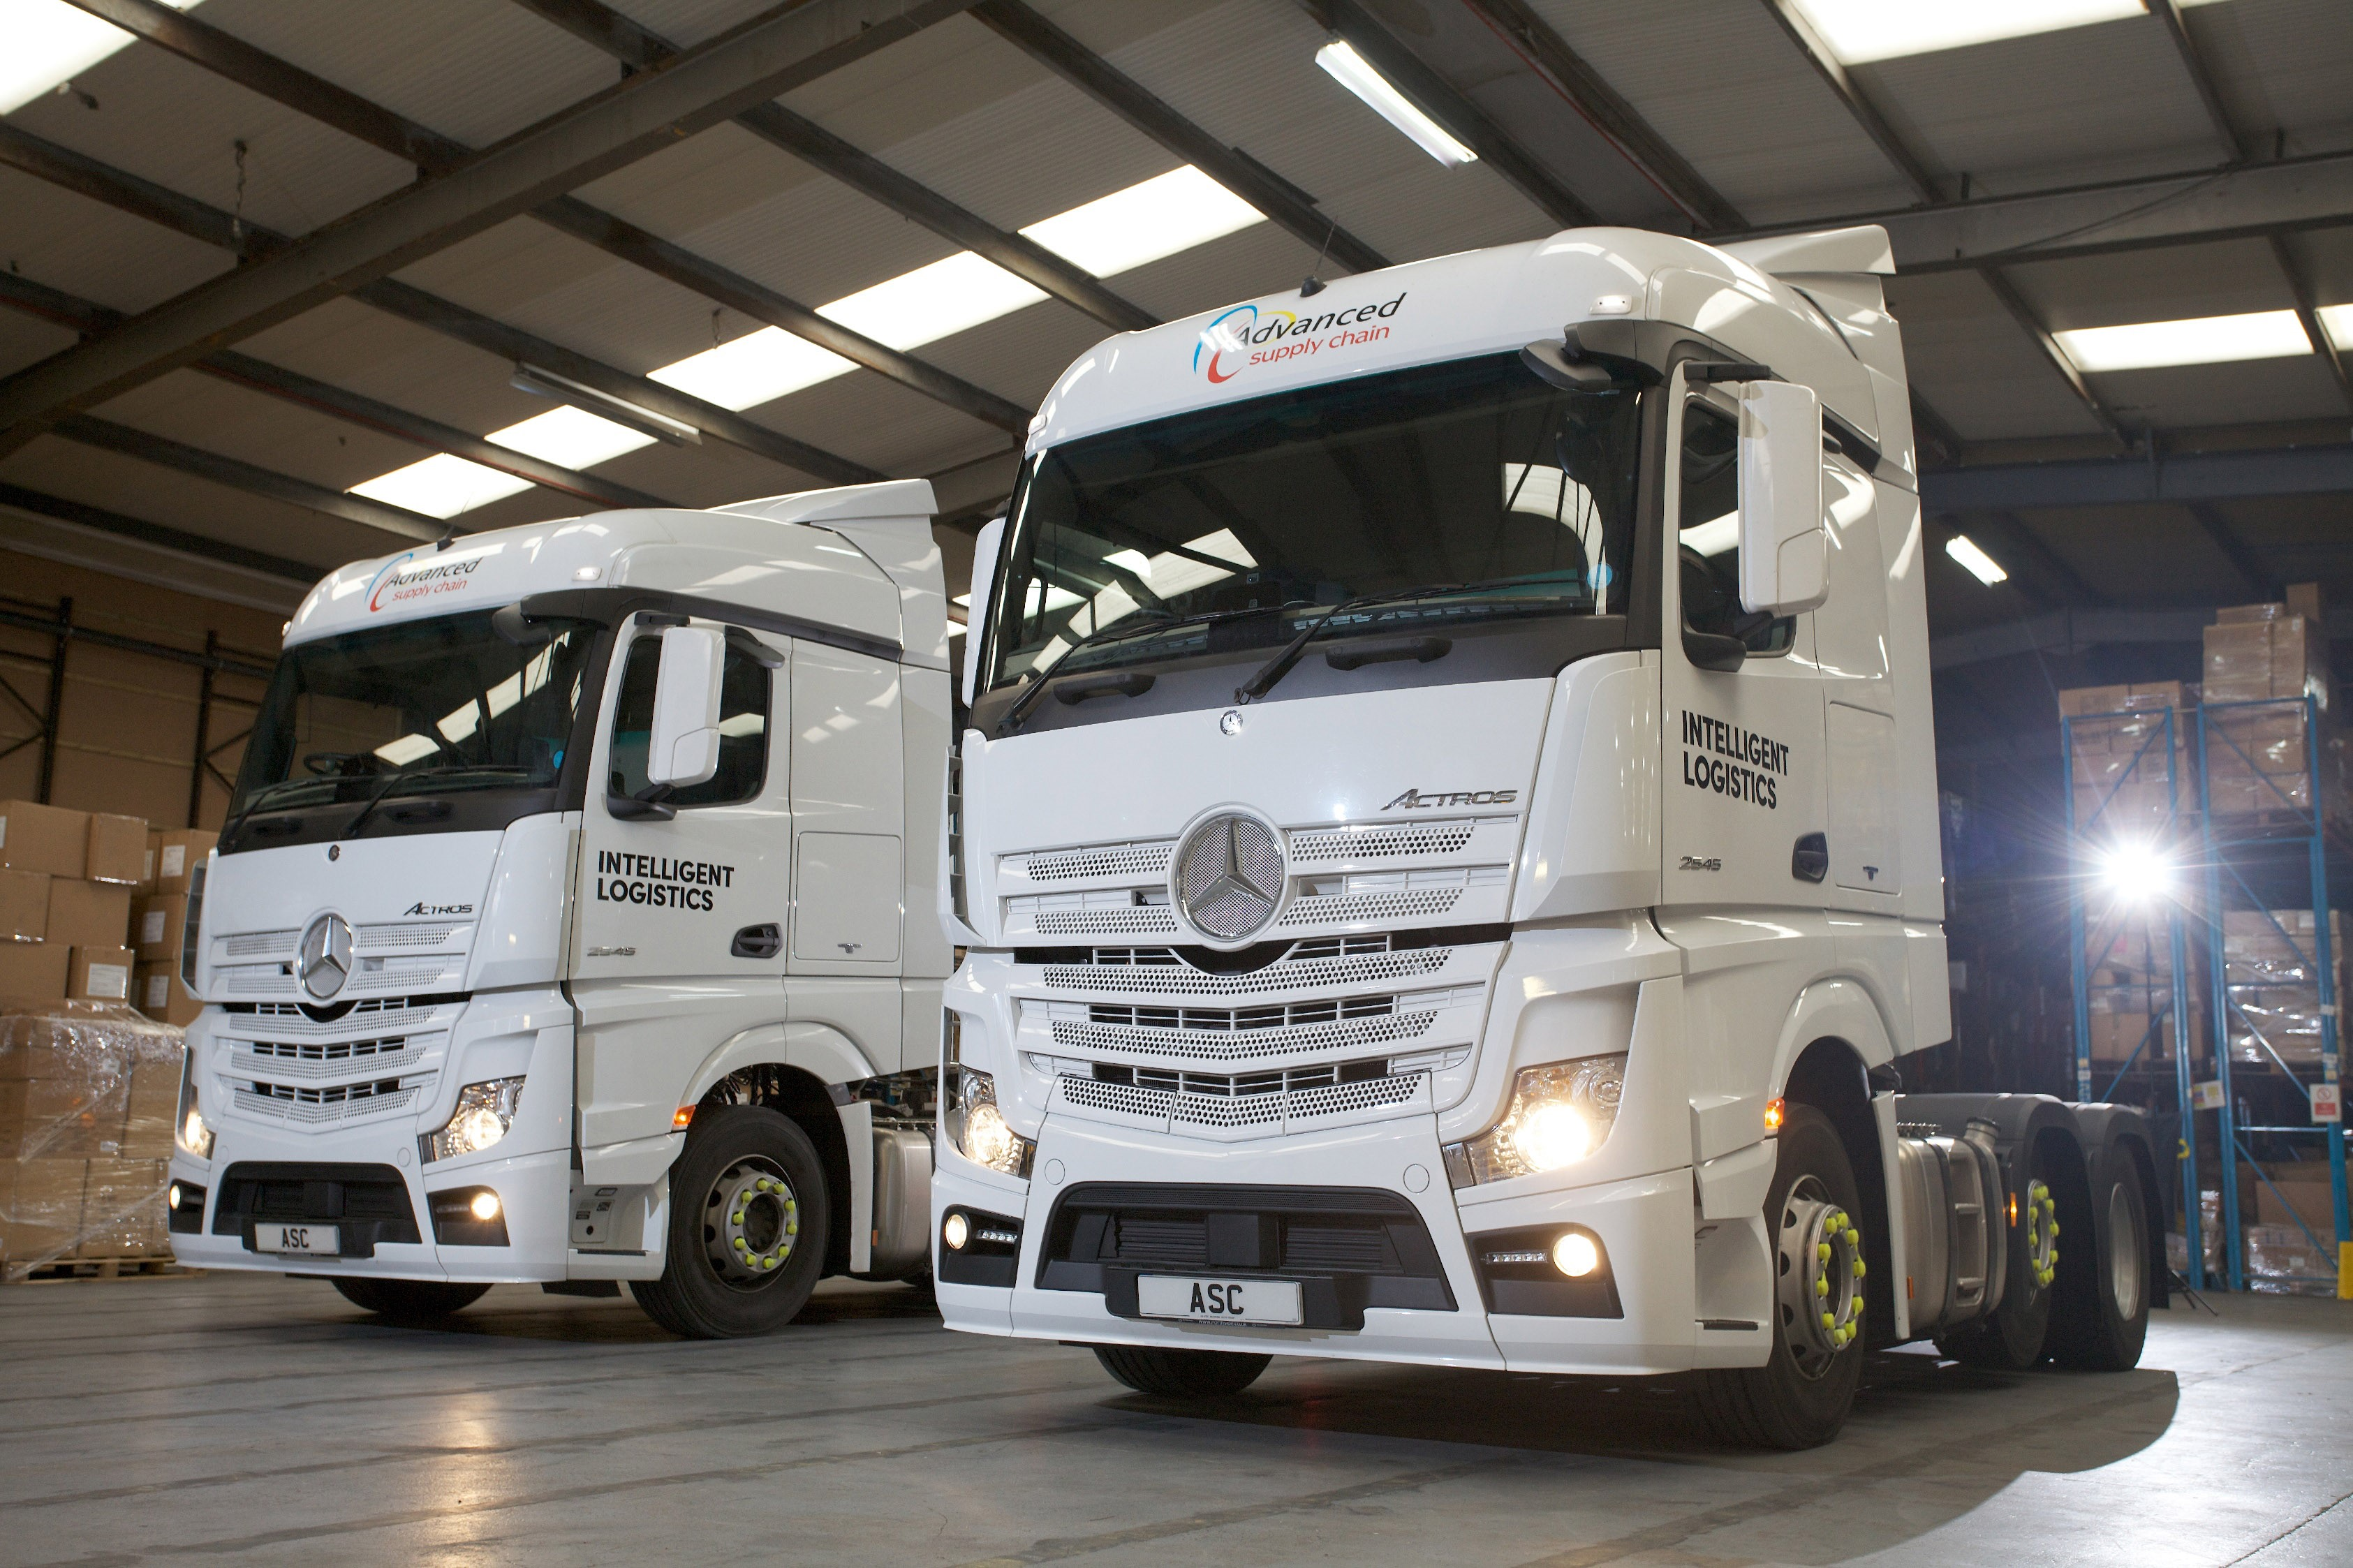 56 new mercedes vehicles for advanced supply chain group for Mercedes benz warehouse jobs